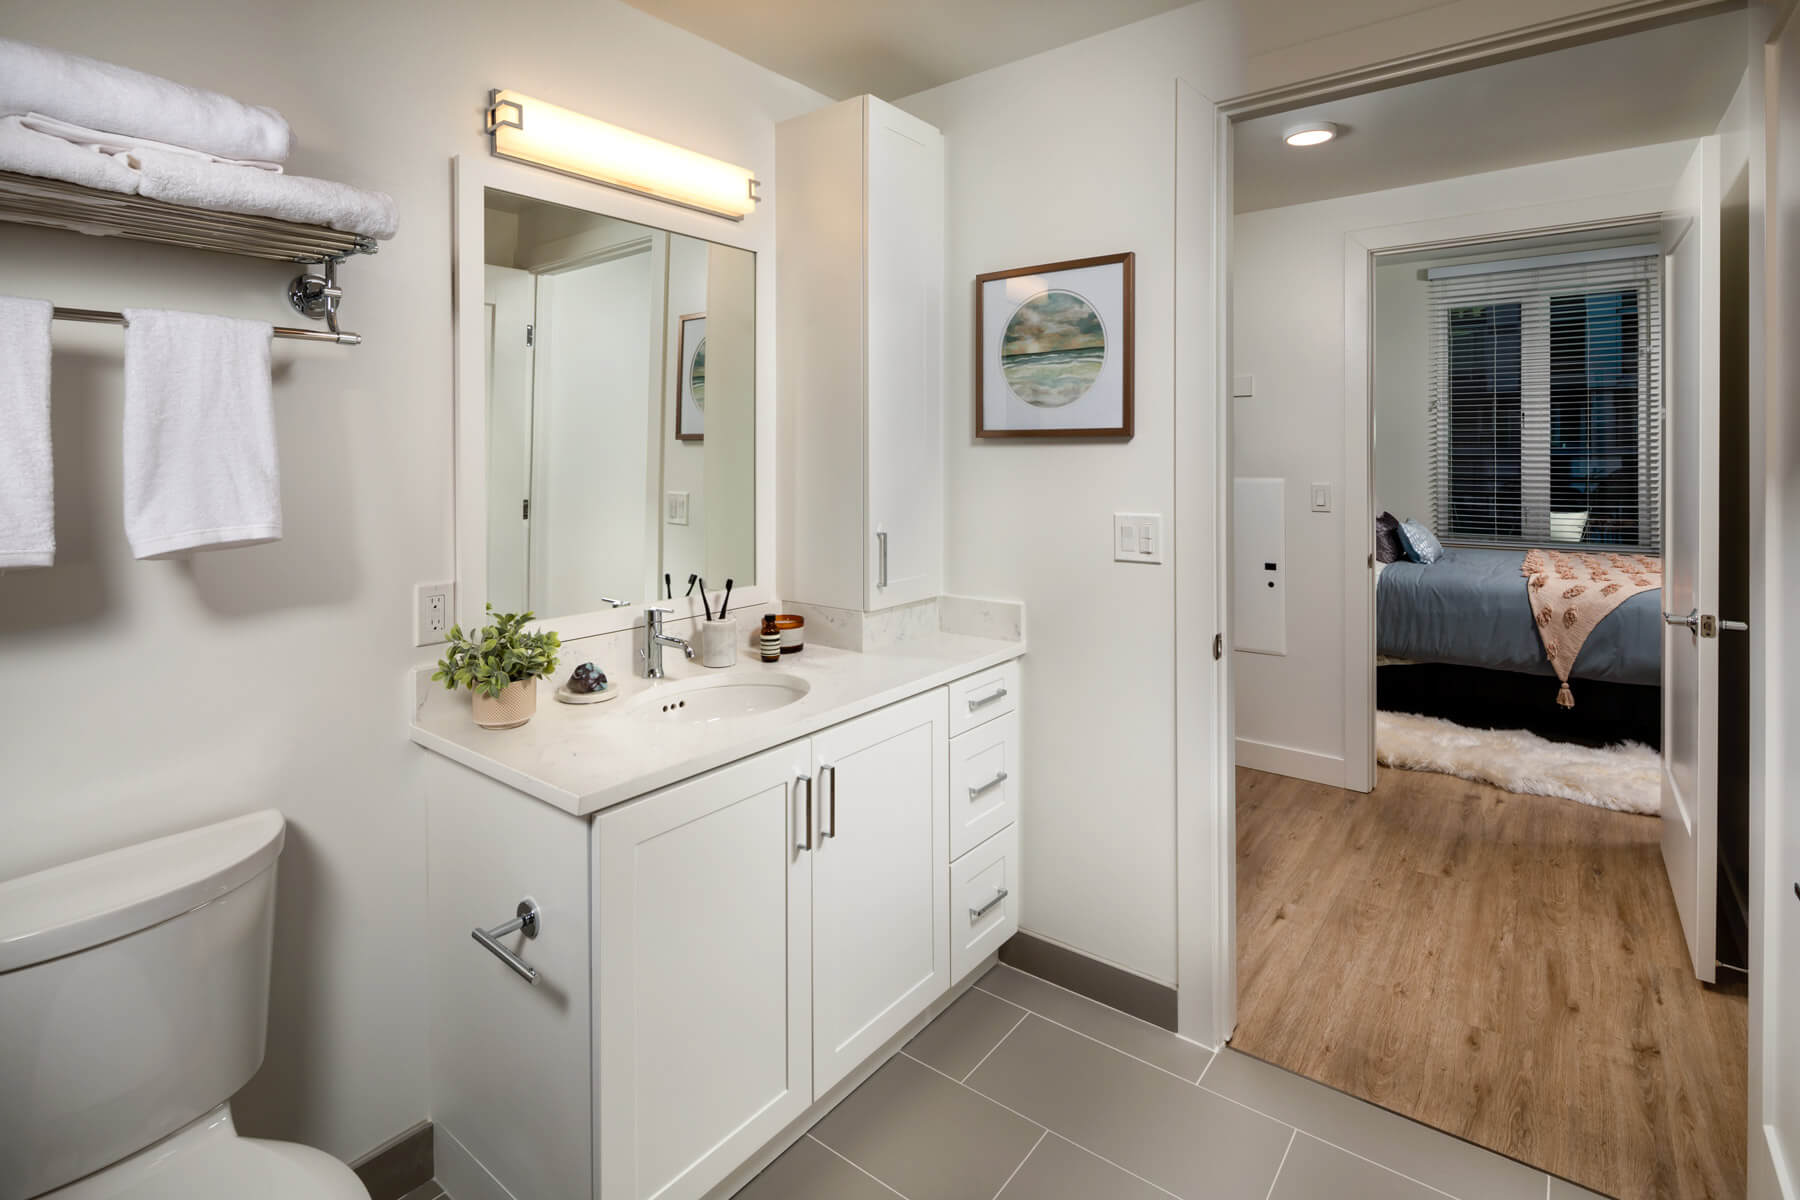 Two Bedroom Residence Master Bathroom To Bedroom